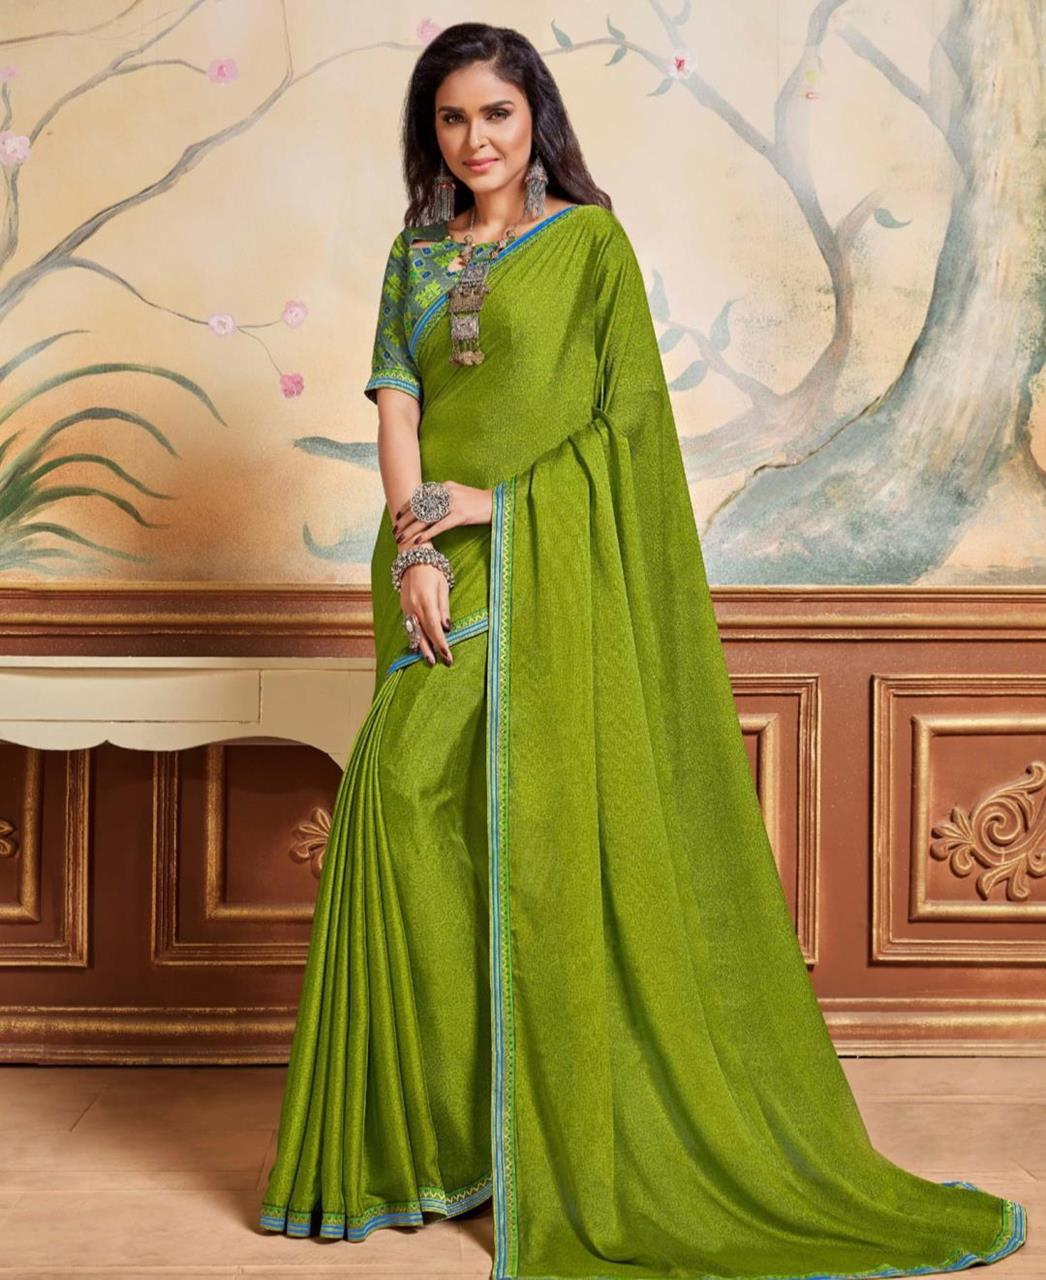 Lace Chiffon Saree in Green